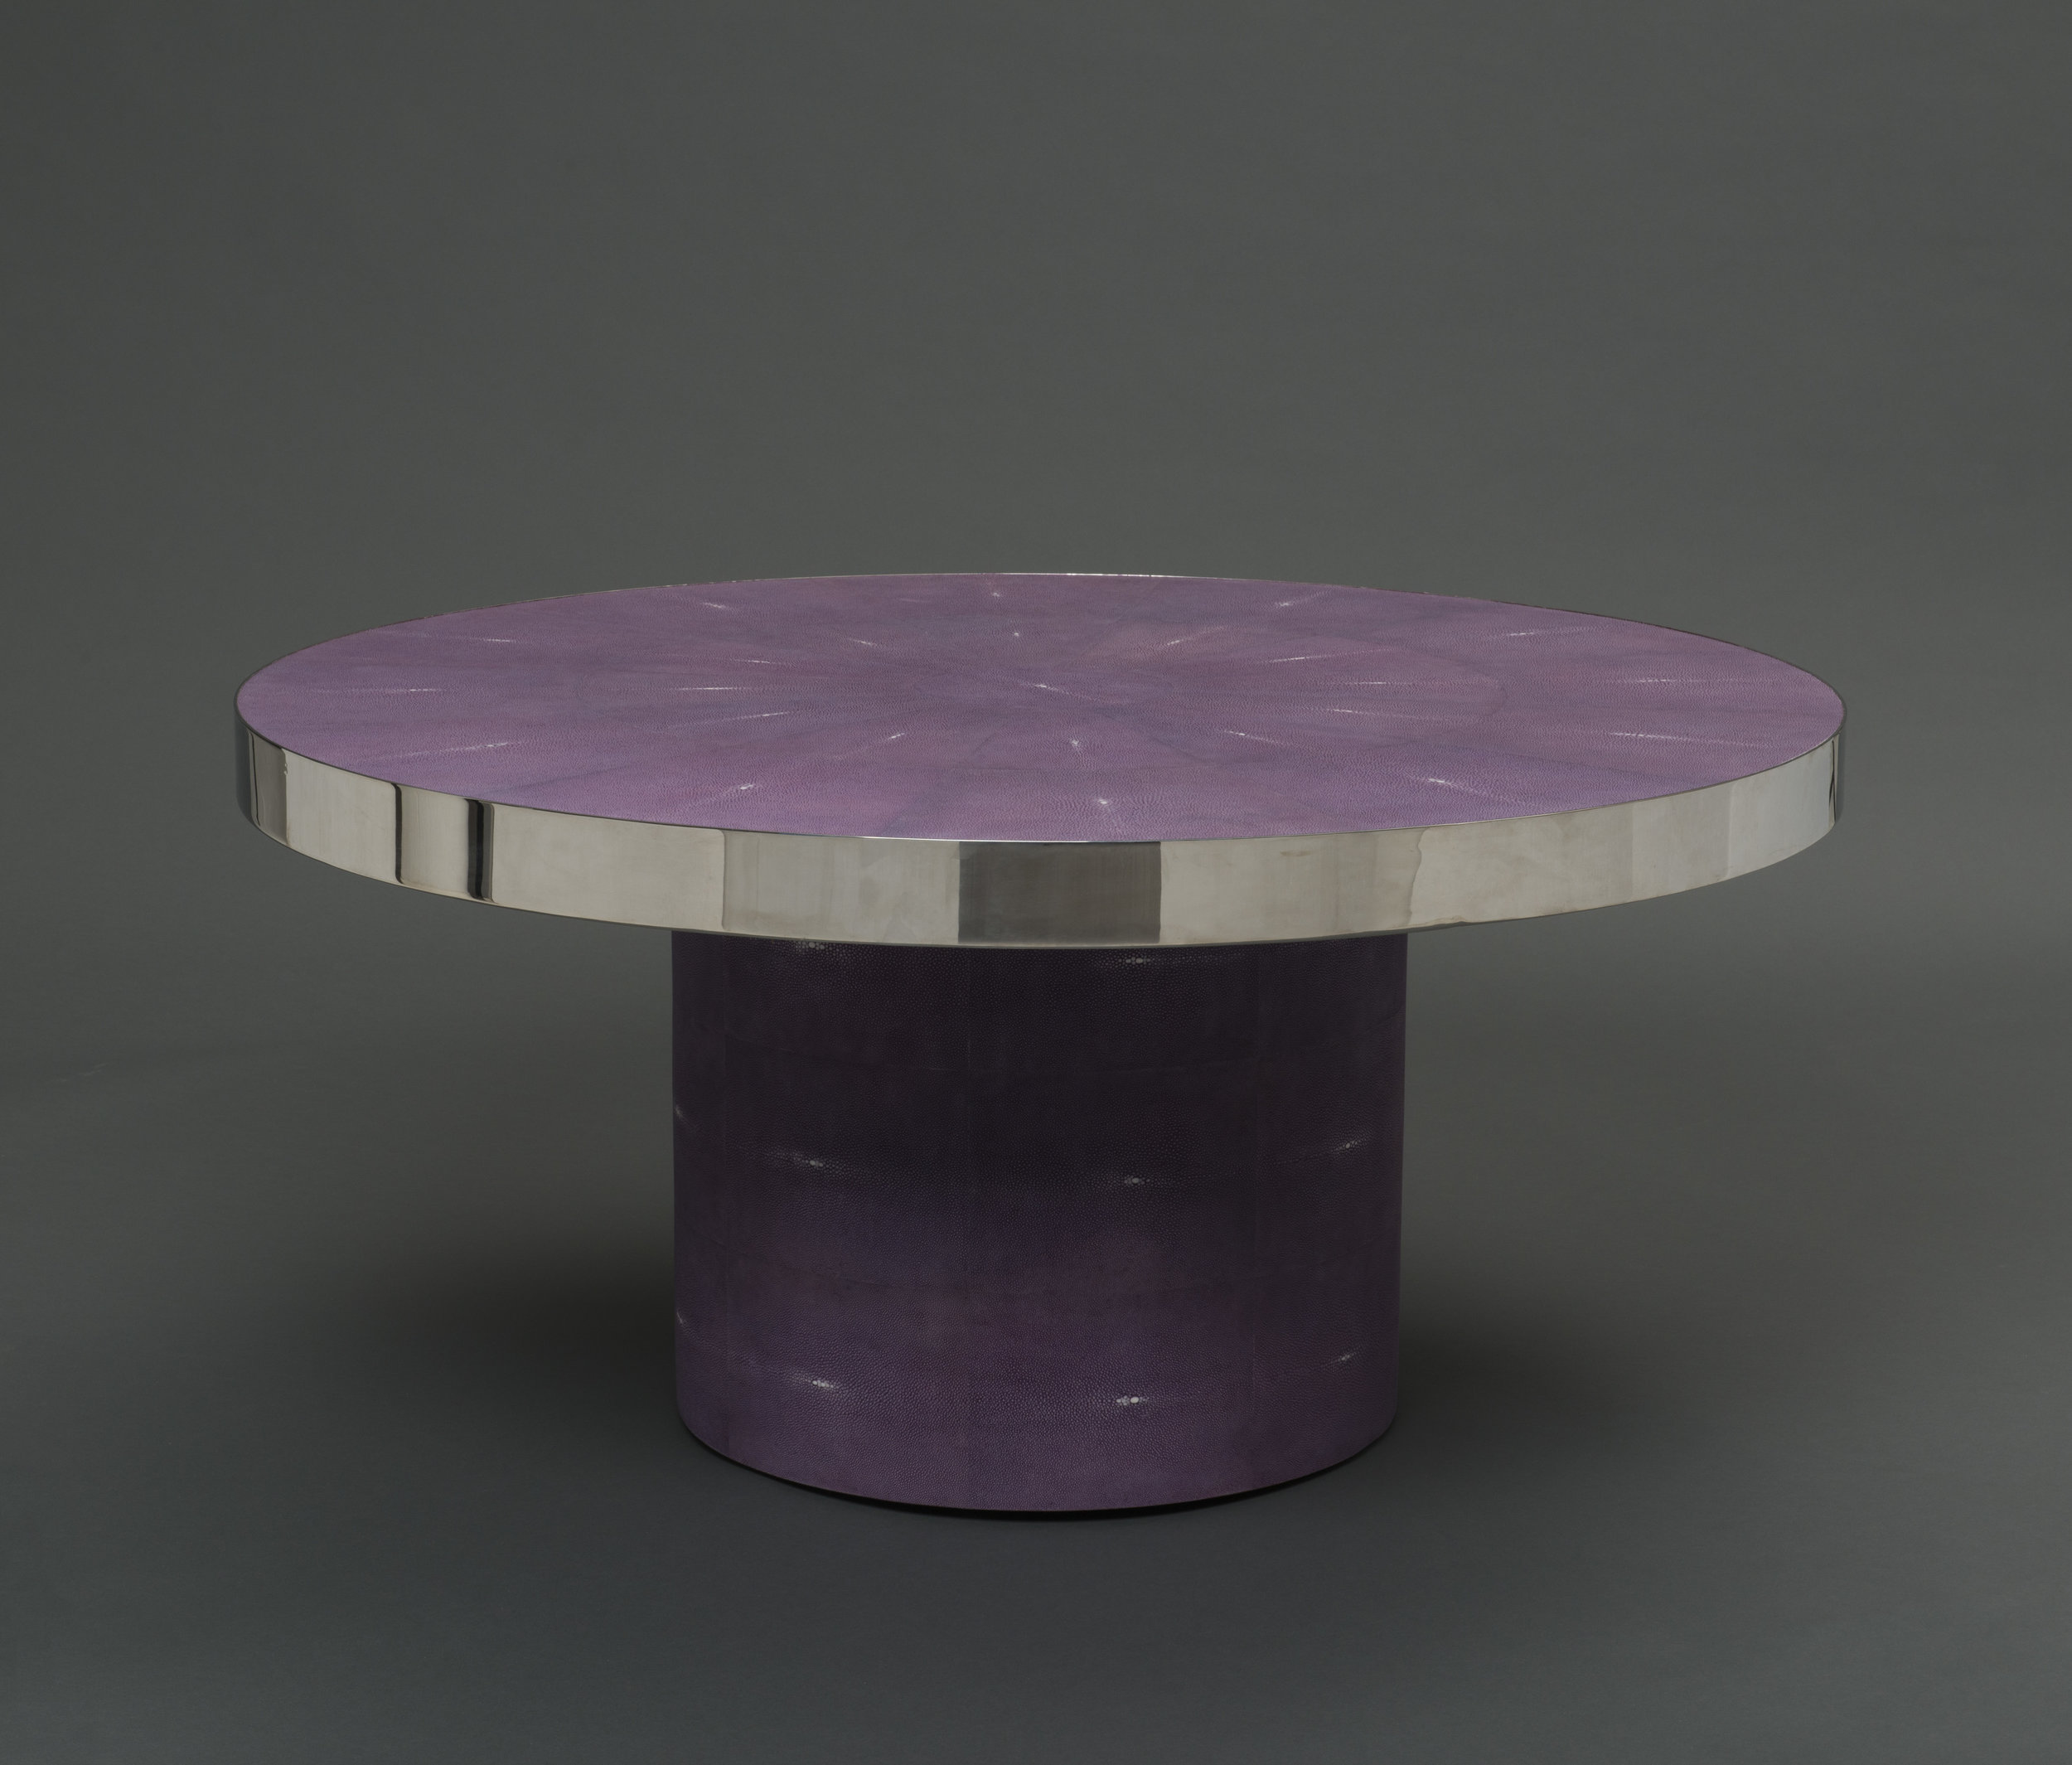 andrew cocktail table-005.jpg